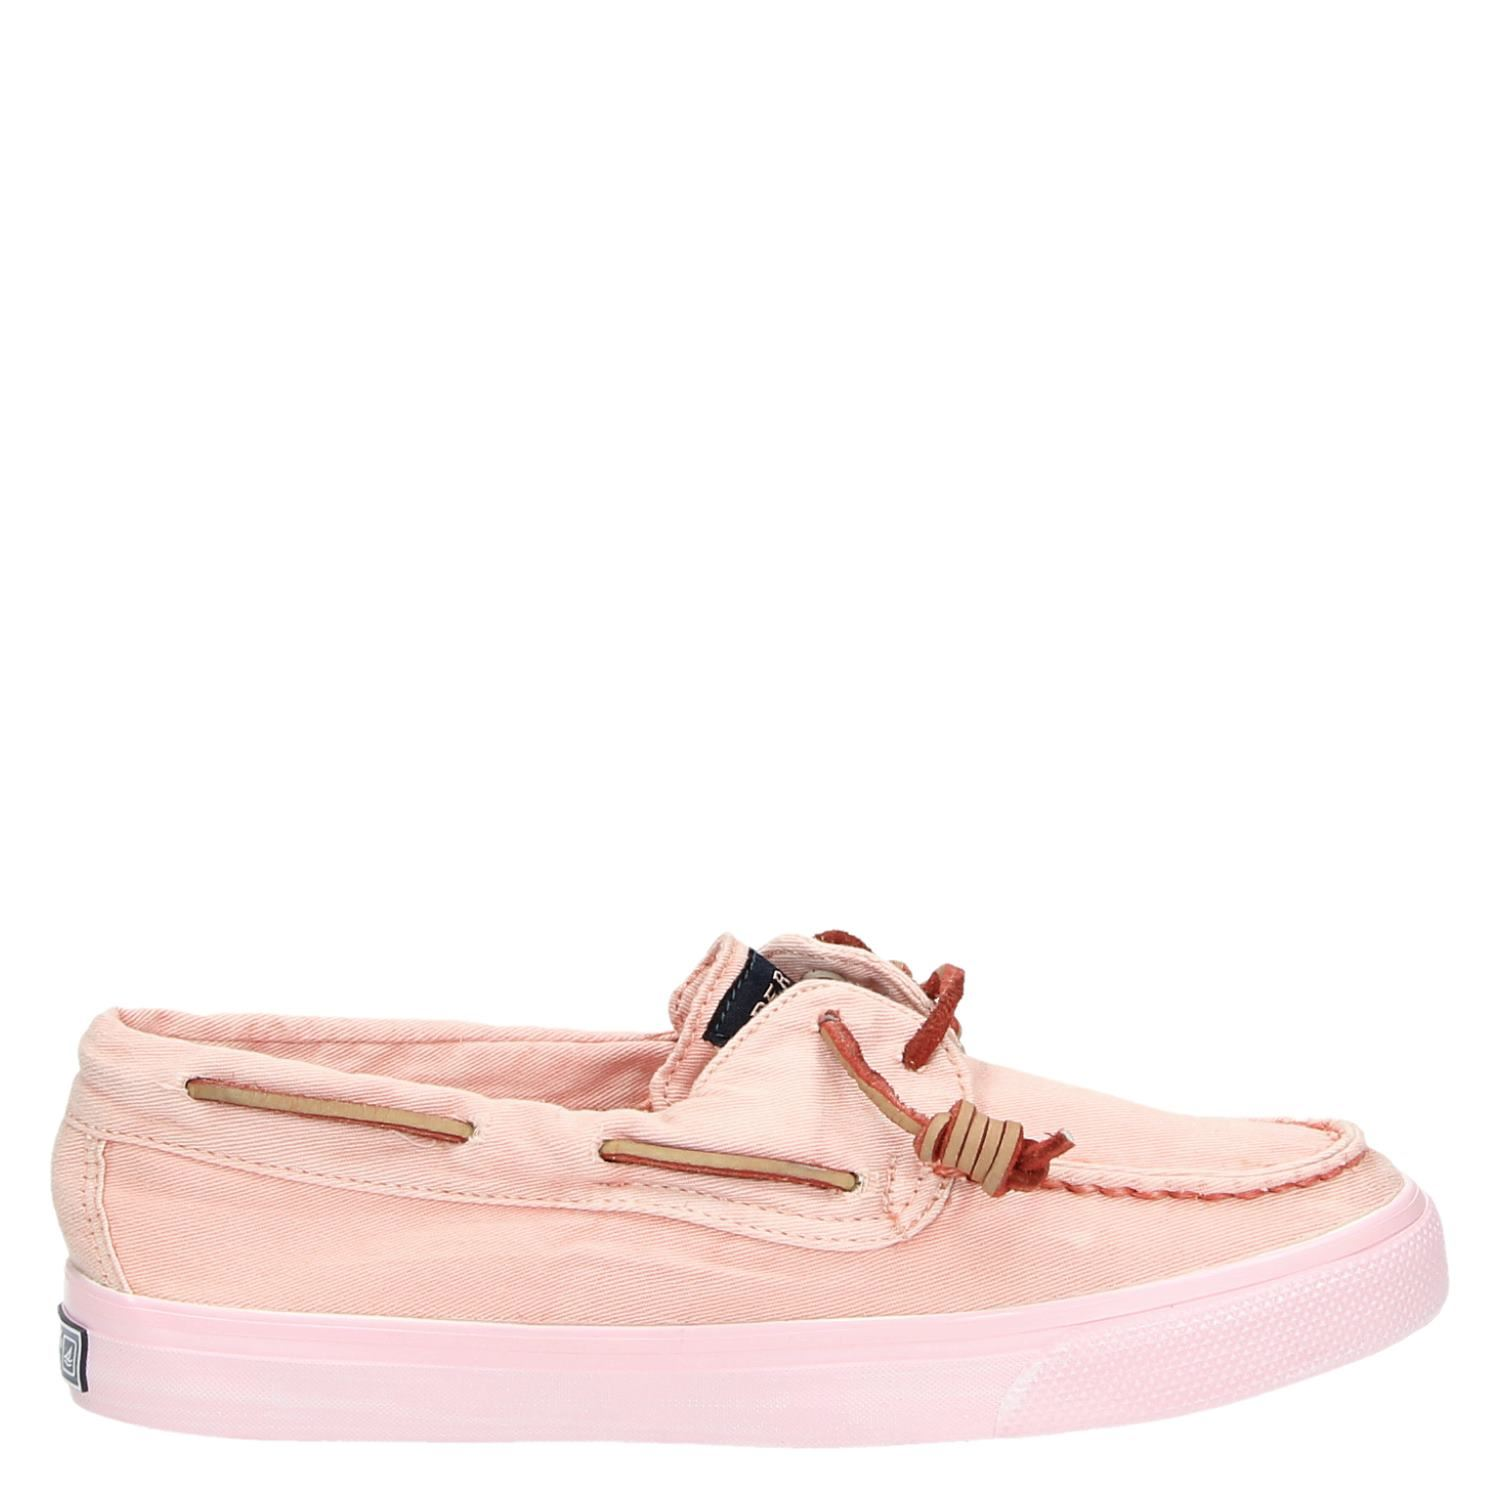 065663adc35 Sperry Bahama Washed dames instapschoenen roze